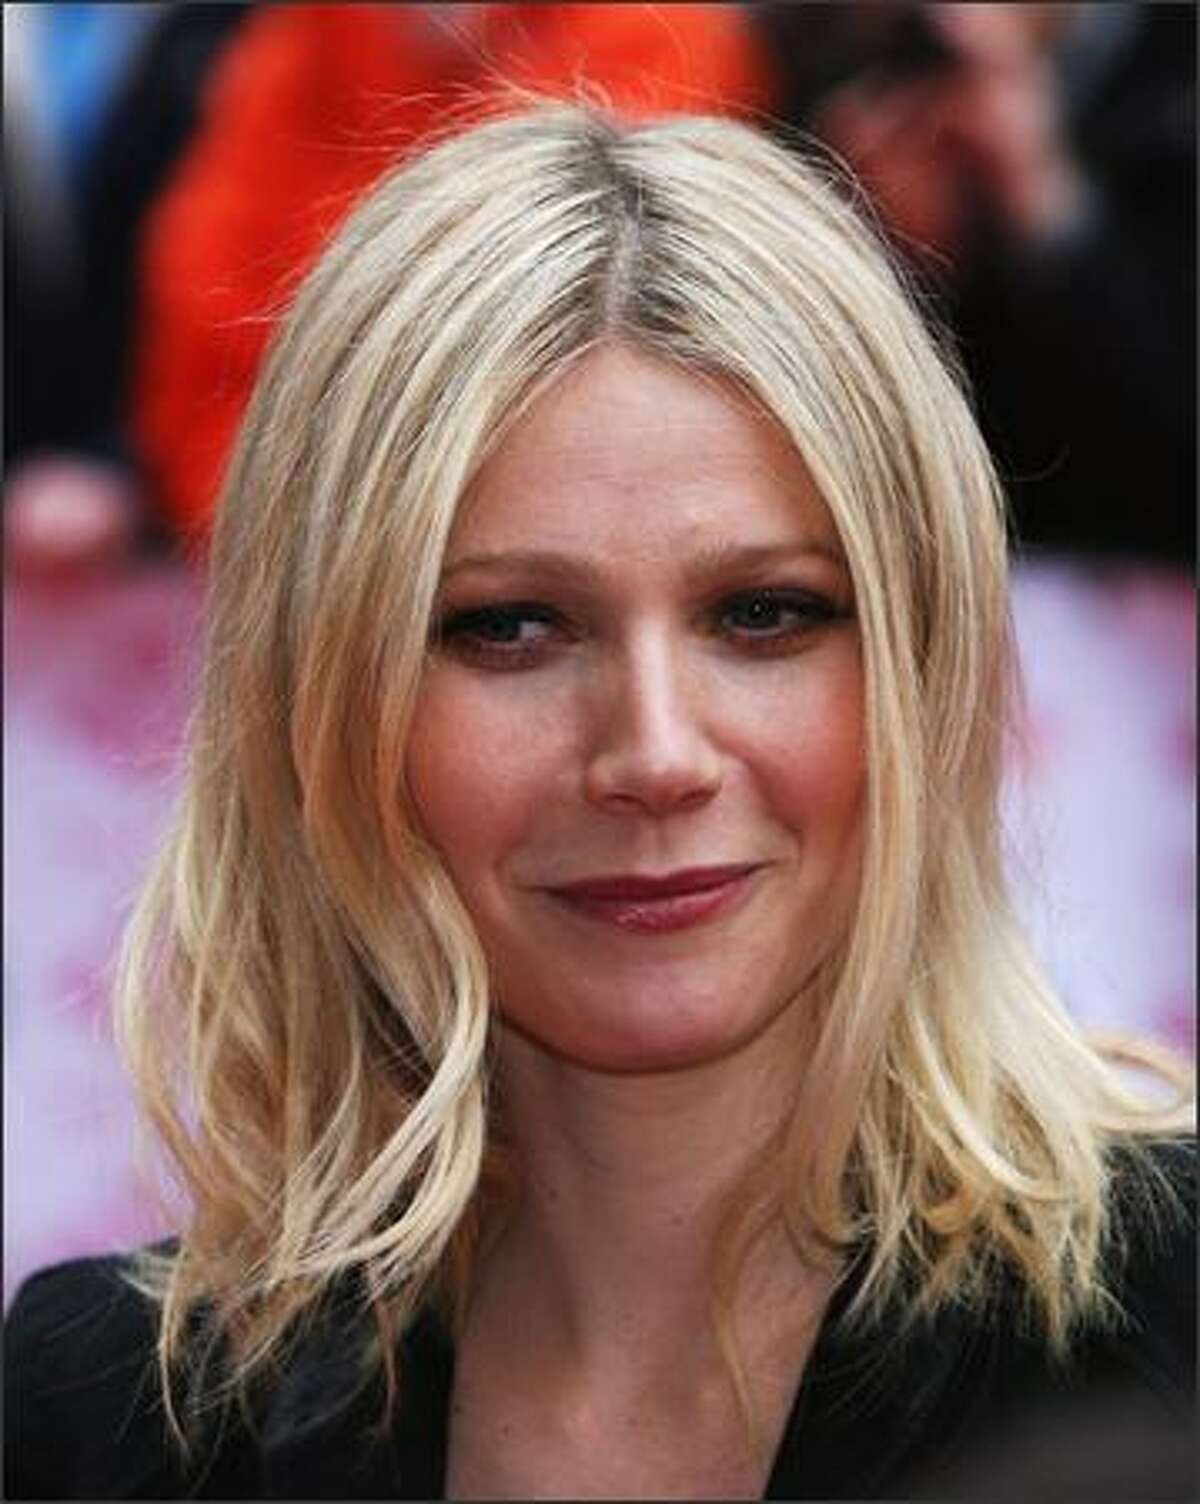 Actress Gwyneth Paltrow arrives at the The Prince's Trust Celebrate Success Awards at the Odeon Leicester Square in London, England.